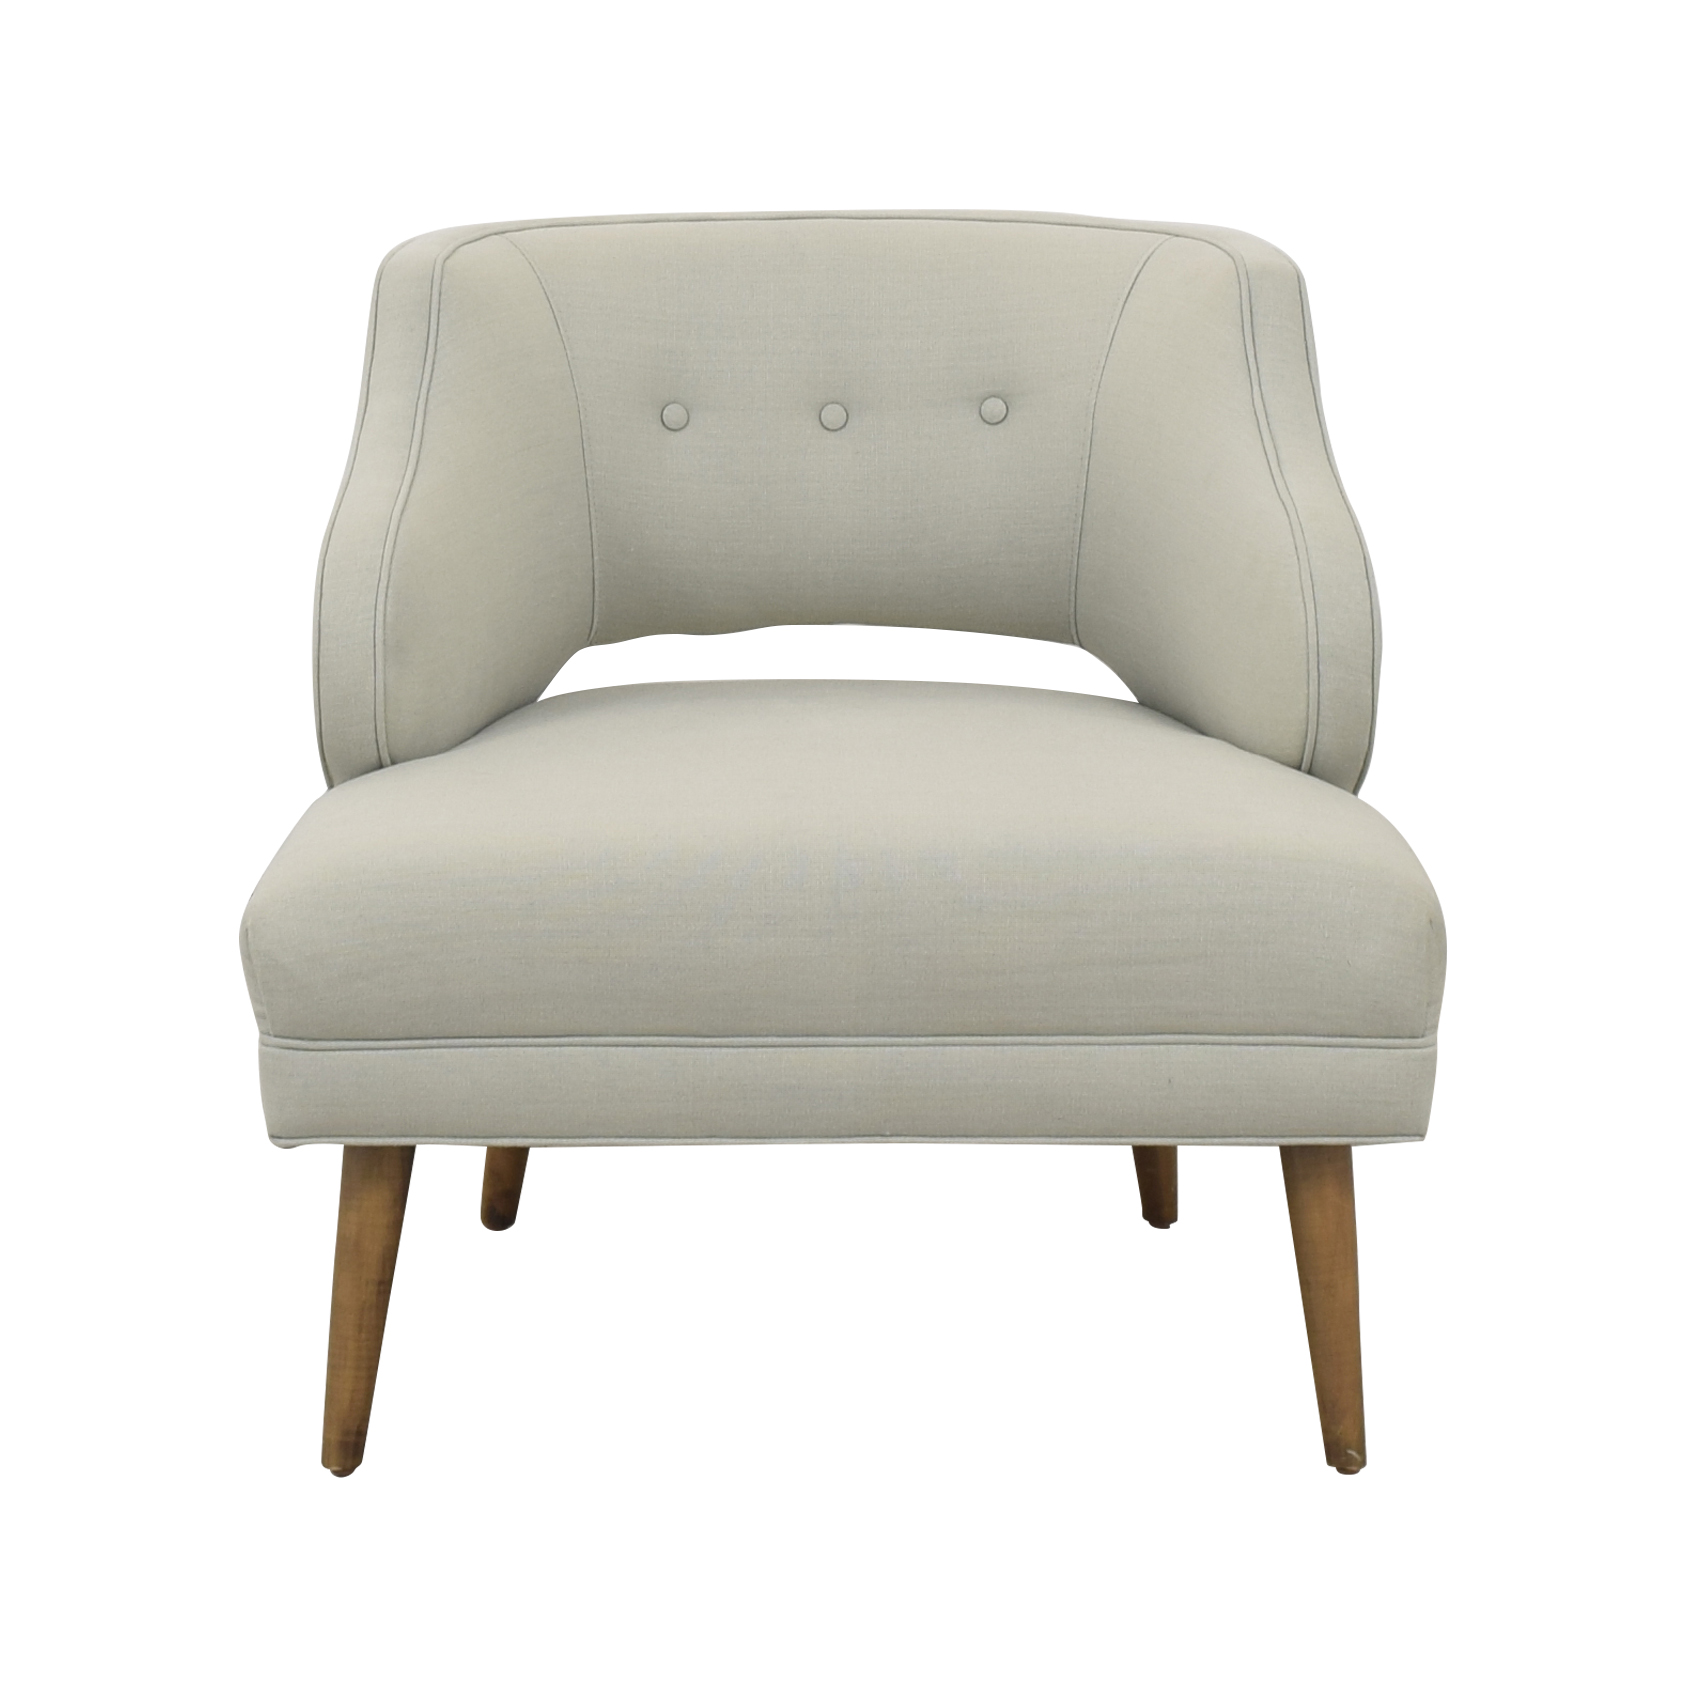 Precedent Accent Chair sale